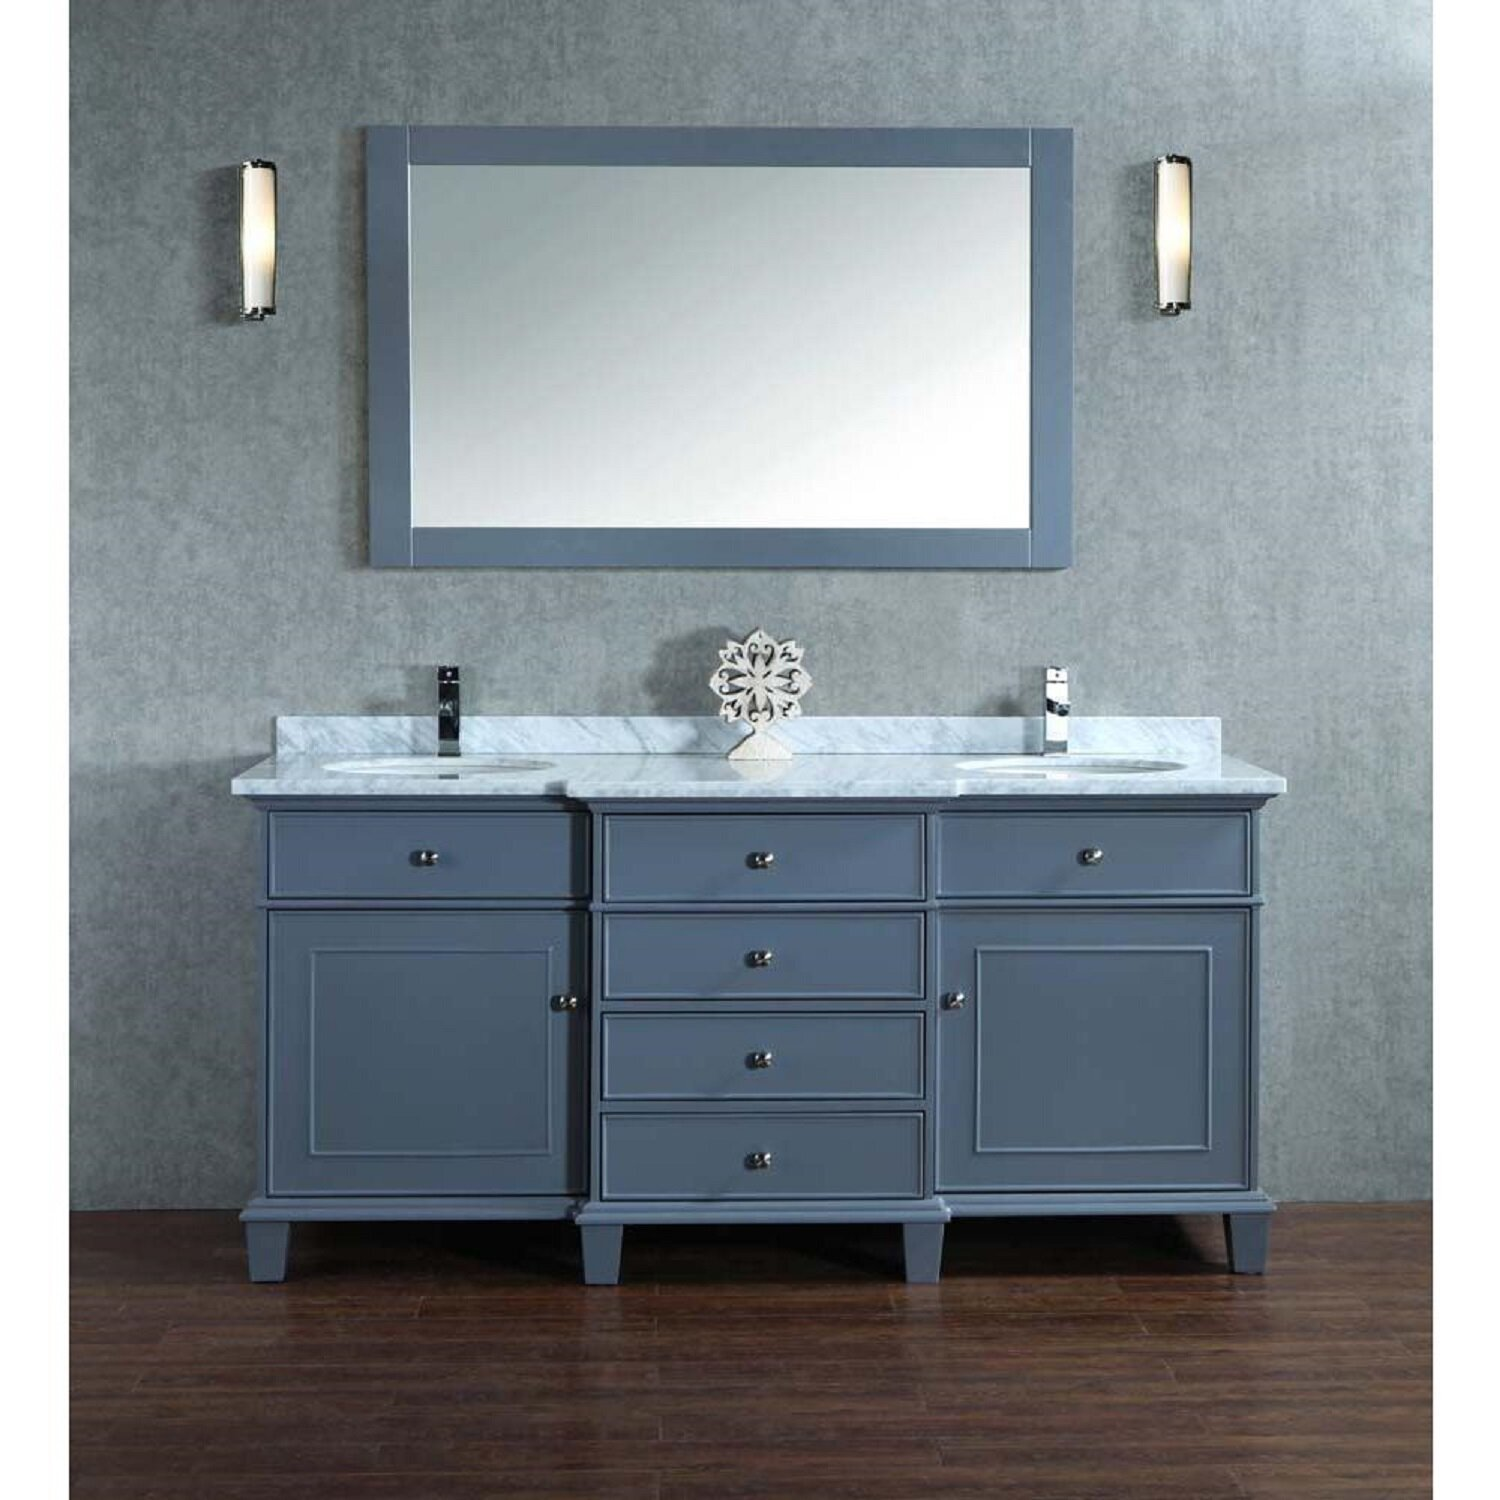 Bathroom exciting 60 inch vanity double sink for modern - 72 inch single sink bathroom vanity ...